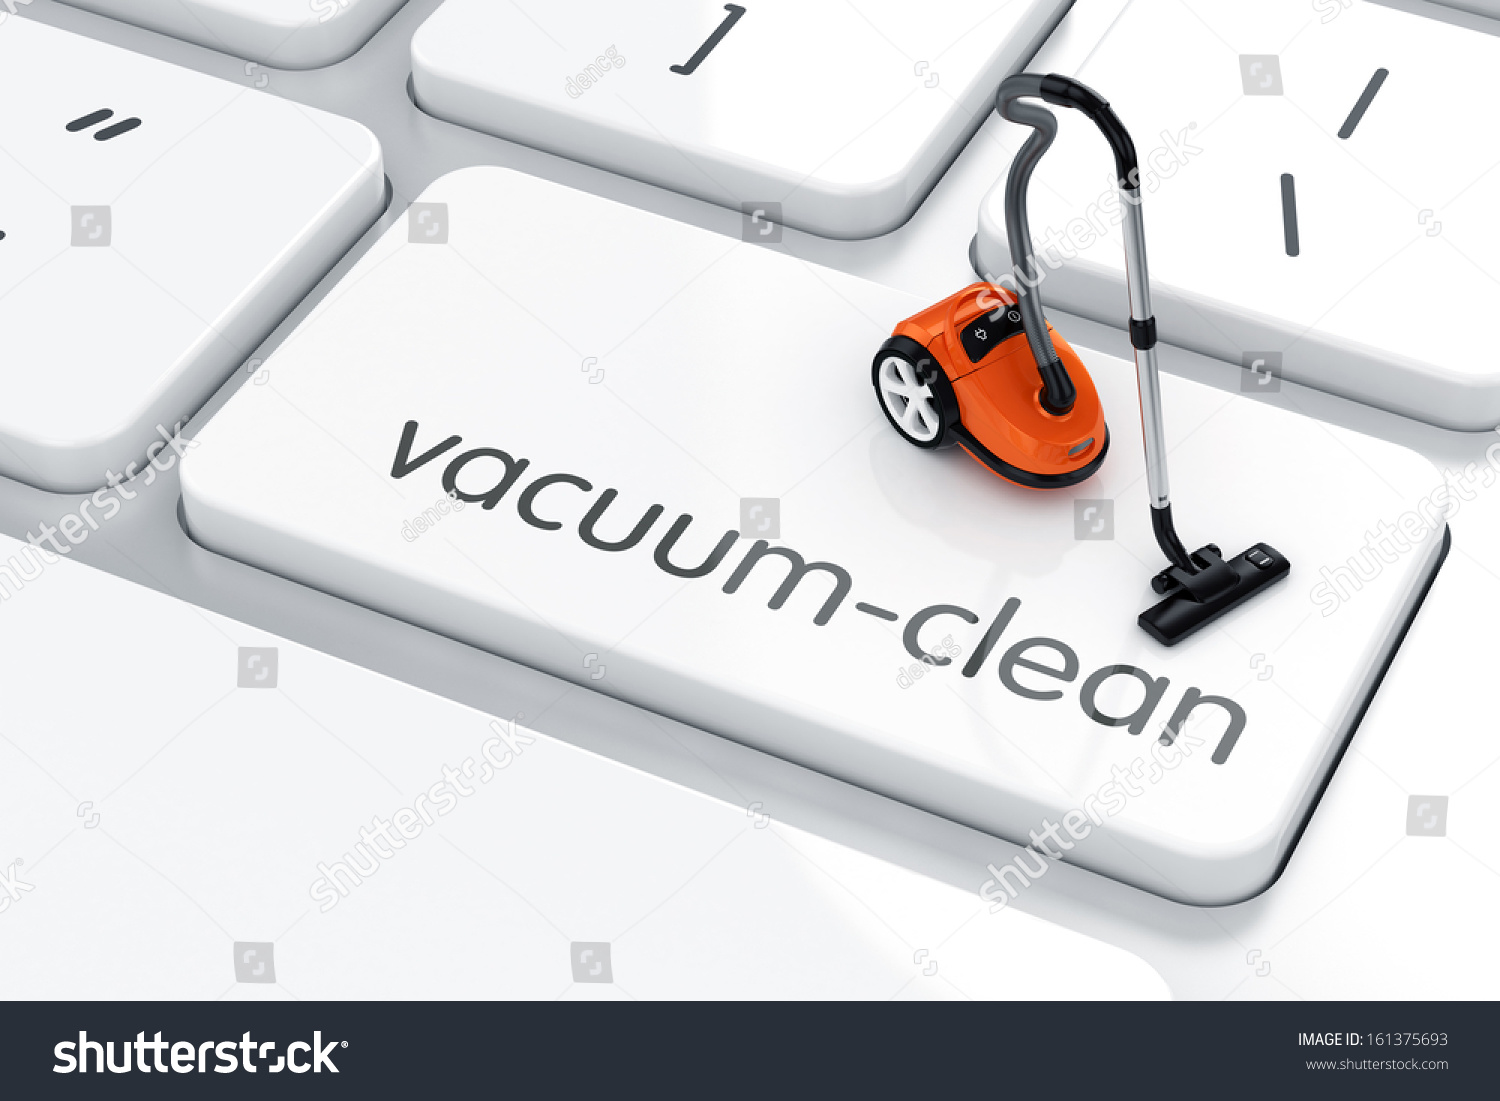 3d render vacuum cleaner symbol icon stock illustration 161375693 3d render of vacuum cleaner symbol icon on the keyboard vacuum clean concept biocorpaavc